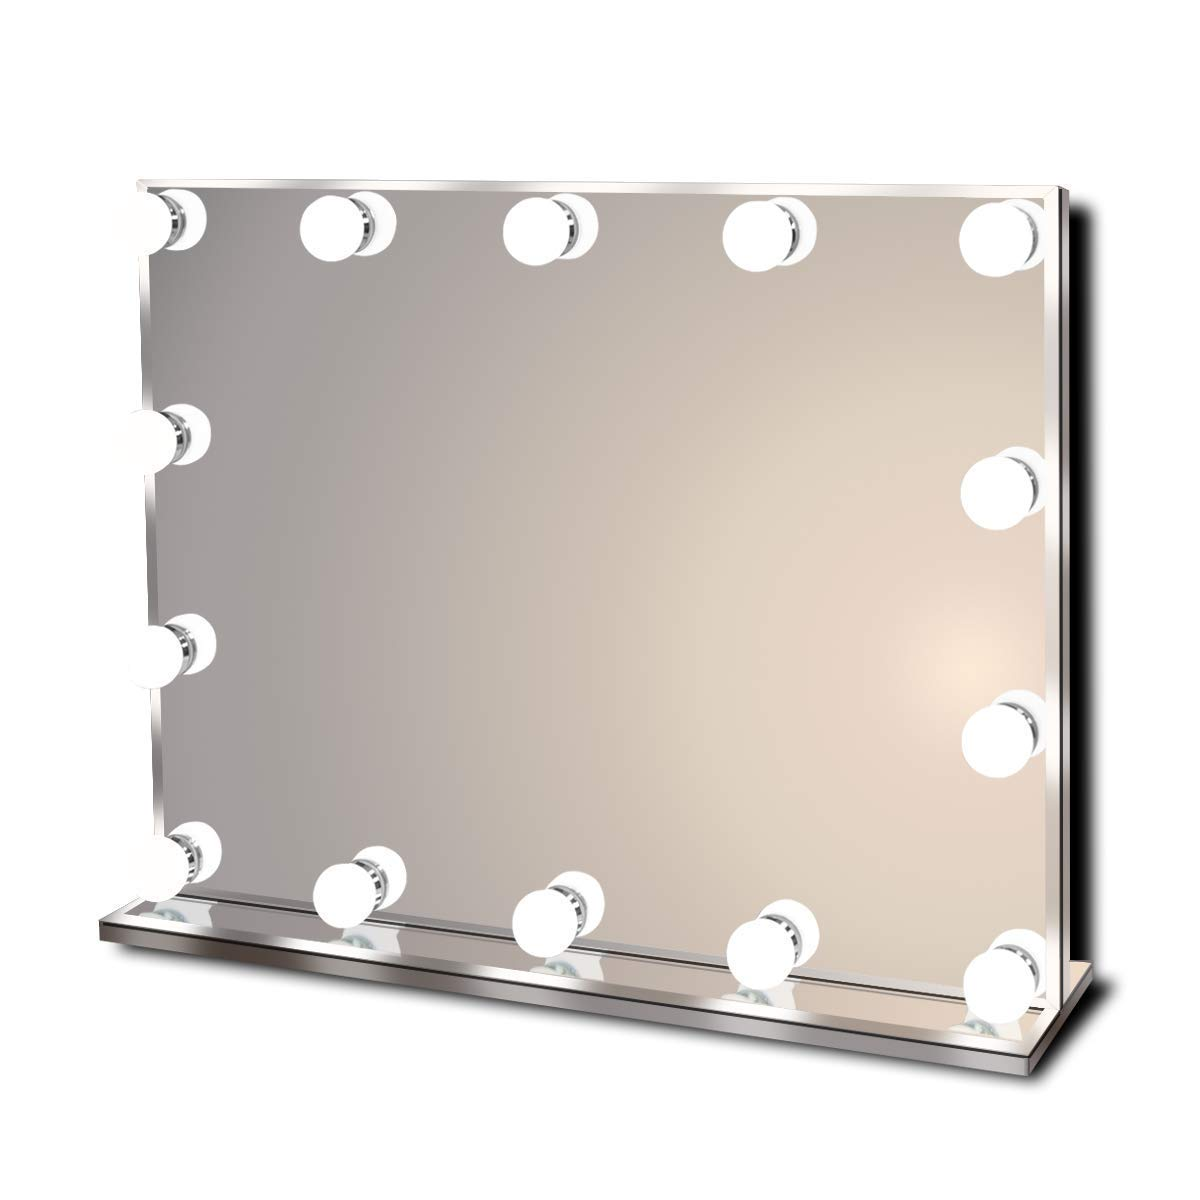 Hollywood Lighted Vanity Makeup Mirror with Bright LED Lights, Light-up Frameless Dressing Table Cosmetic Mirror with 14 Dimmable Bulbs, Multiple Color Modes, Table-Top or Wall Mount, Large by Waneway